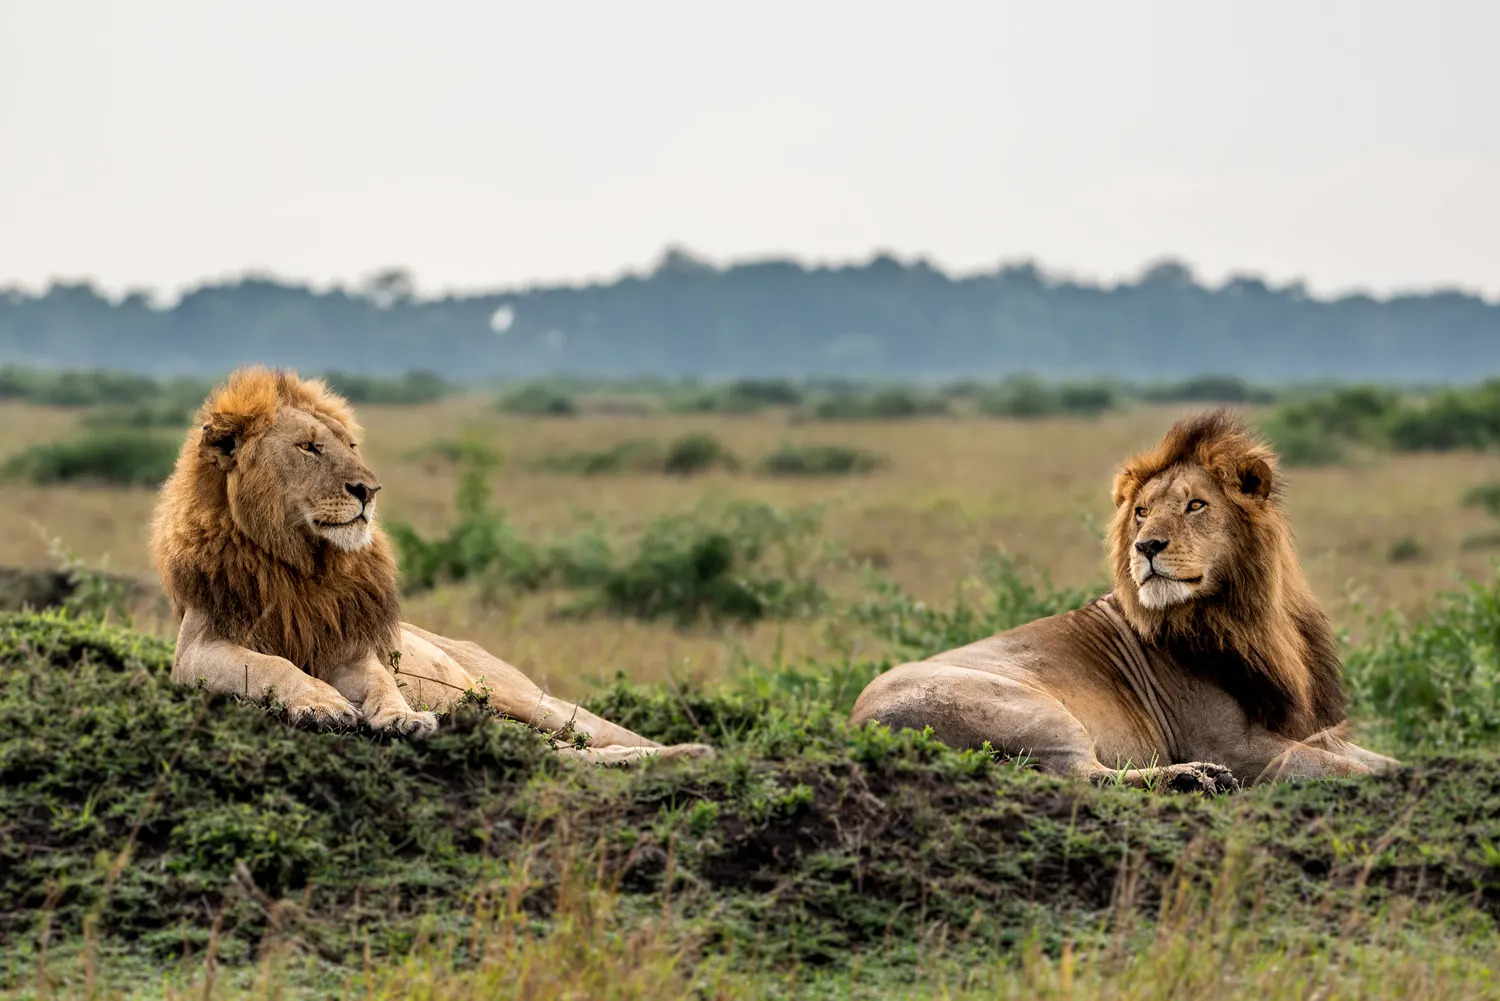 Male Lions on mound